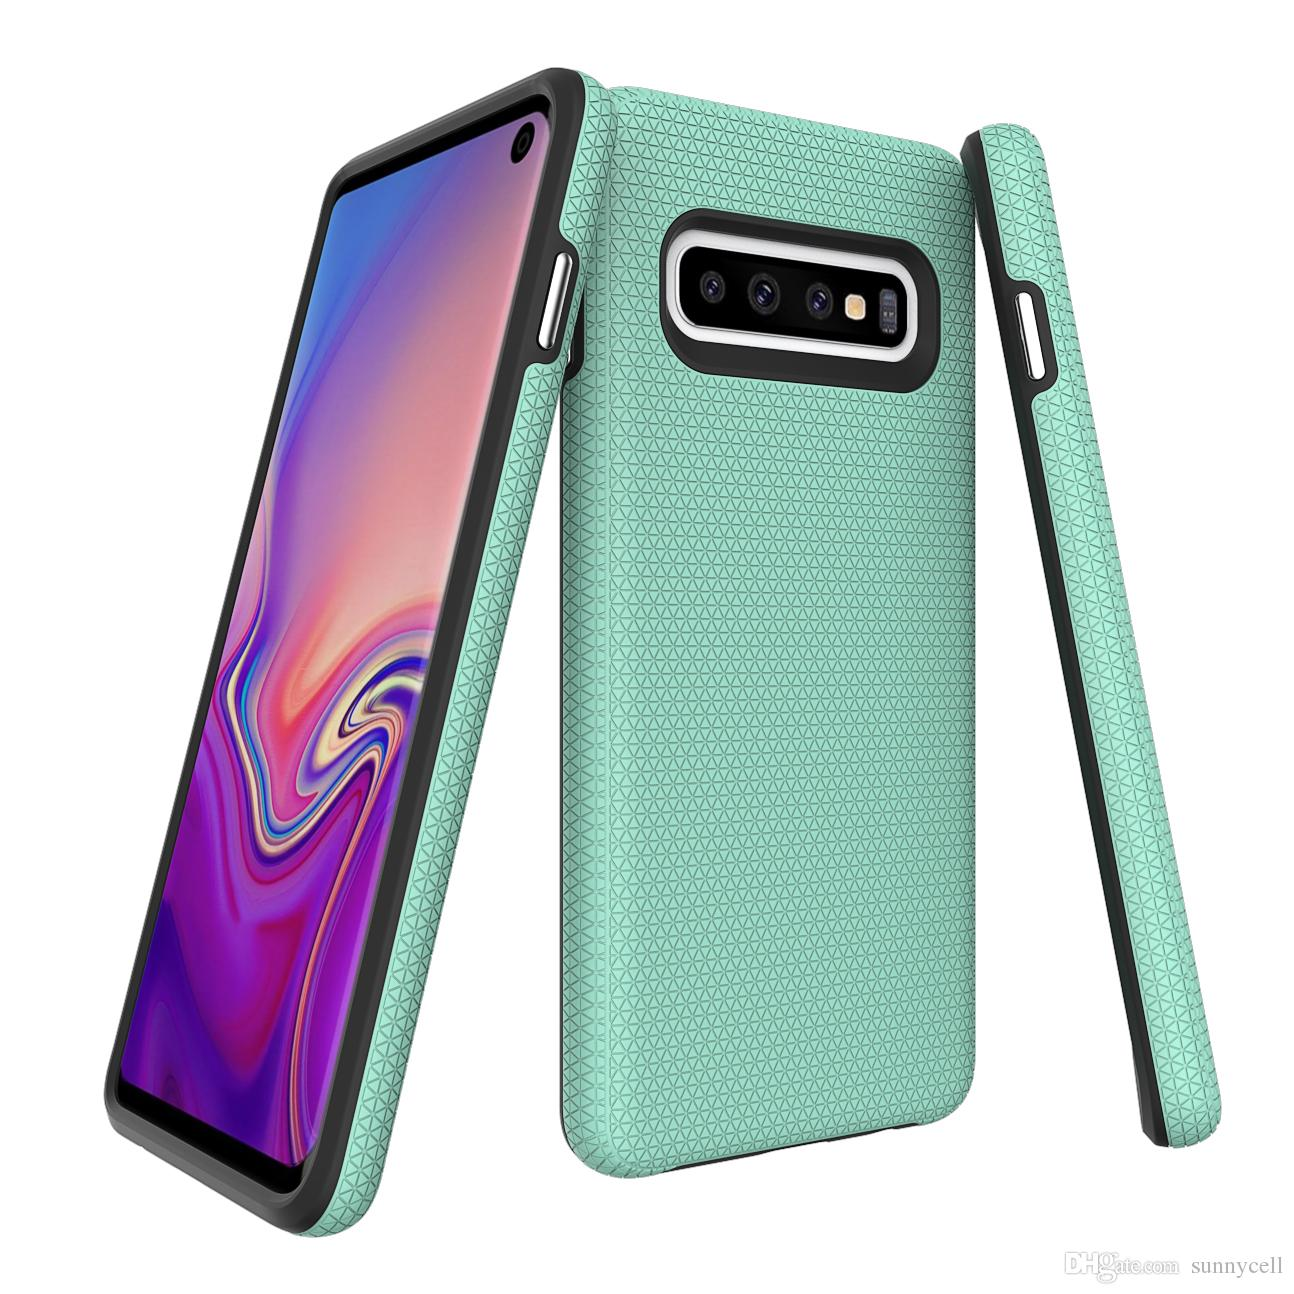 For LG G8 ThinQ G7 G6 K10 K8 K4 K3 V30 V40 V50 Stylus 3 Triangle Series Shock Absorbing Patterned Design Protection Cover Case